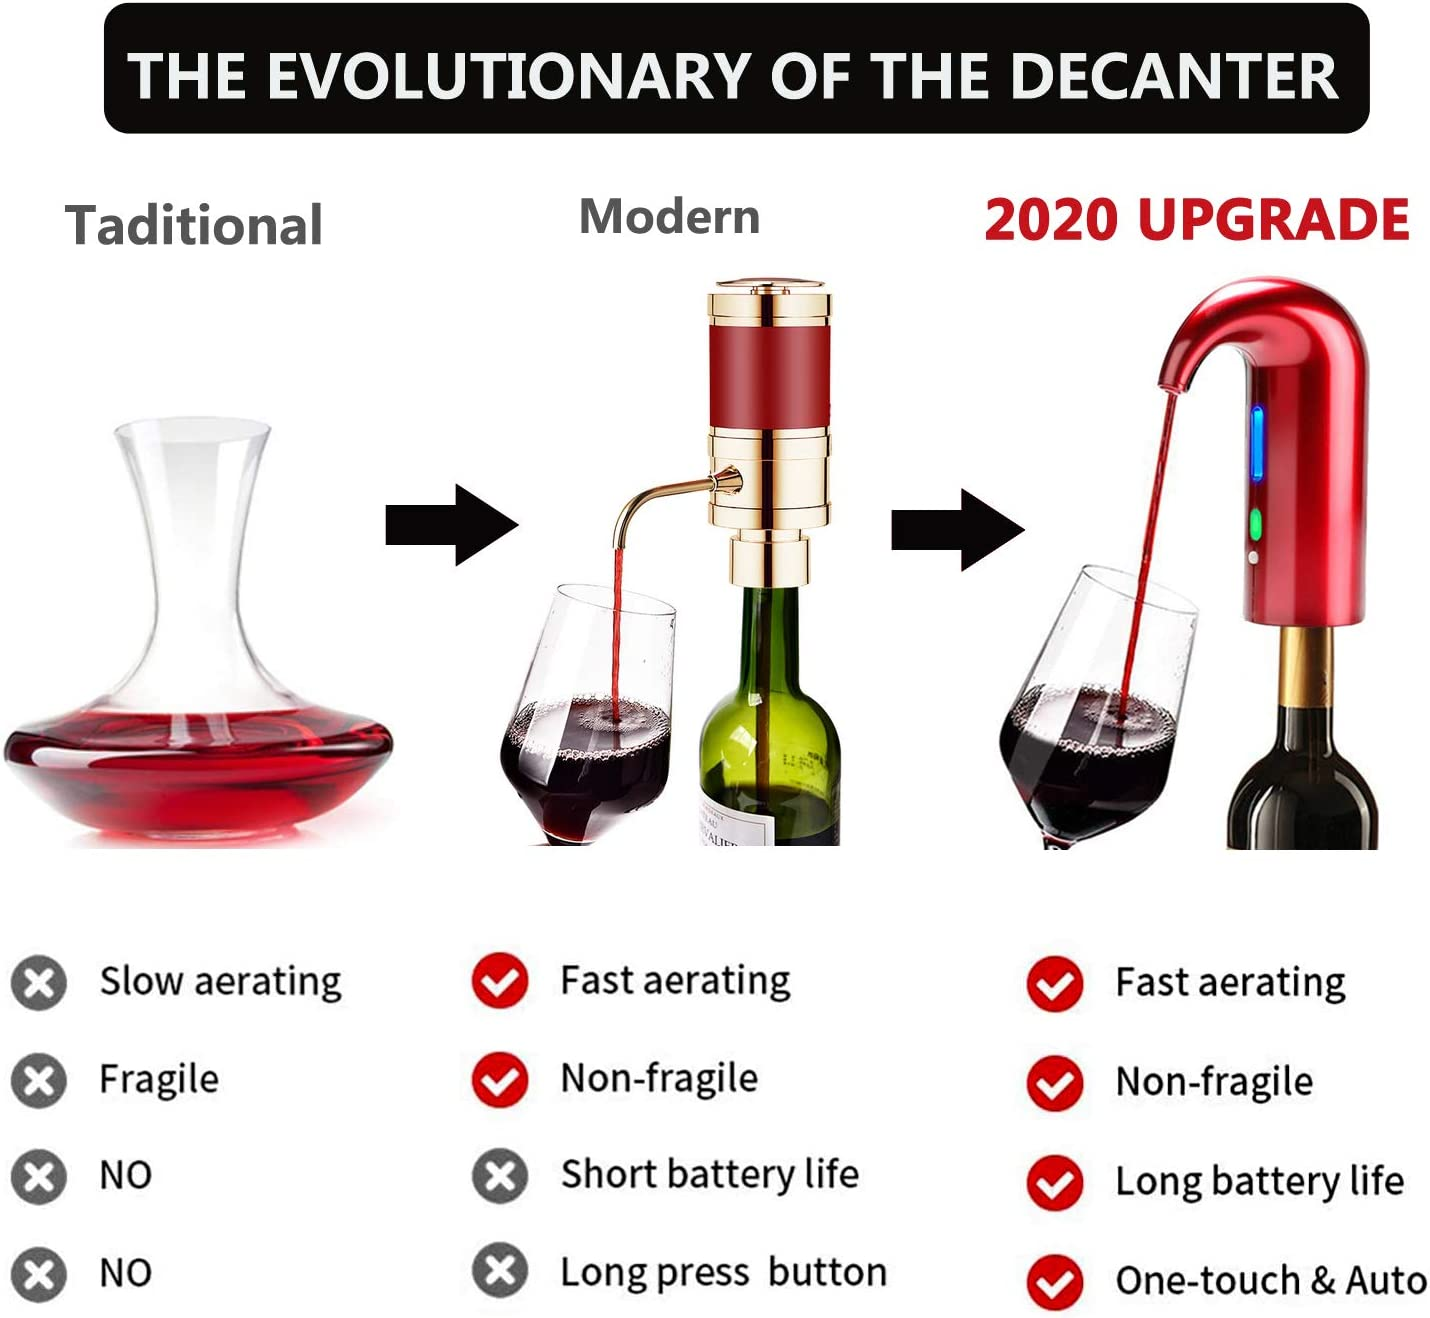 Automatic Wine Decanter Spout with Wine Accessories for Red White Wine Enthusiasts HEYPORK Electric Wine Aerator Pourer with Vacuum Pump Stopper Rechargeable Wine Dispenser Filter with Storage Bag